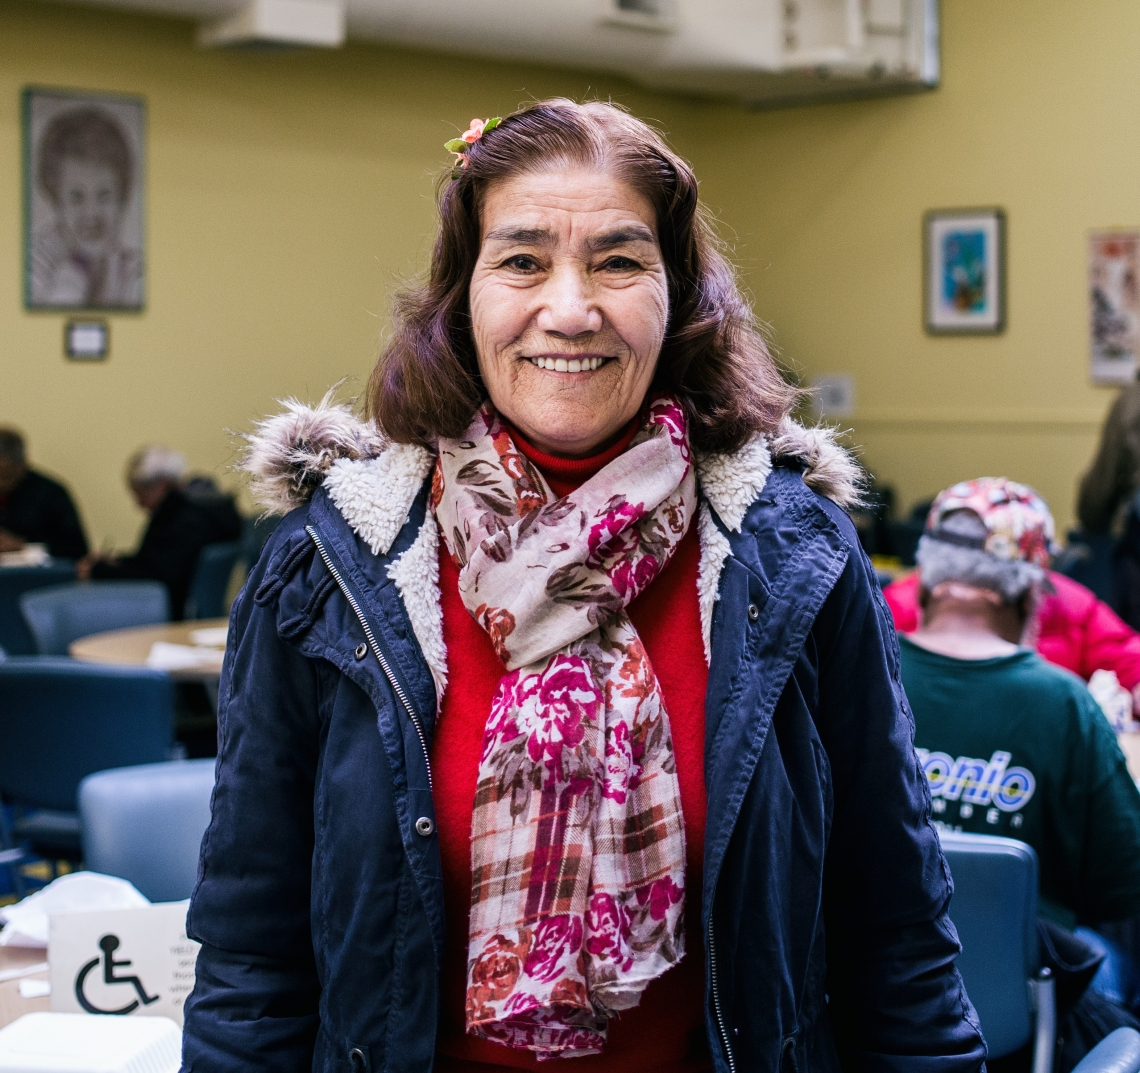 Project Open Hand client Orazgul, from Turkmenistan, is one of the hundreds of San Francisco senior who benefits from our daily meals services.